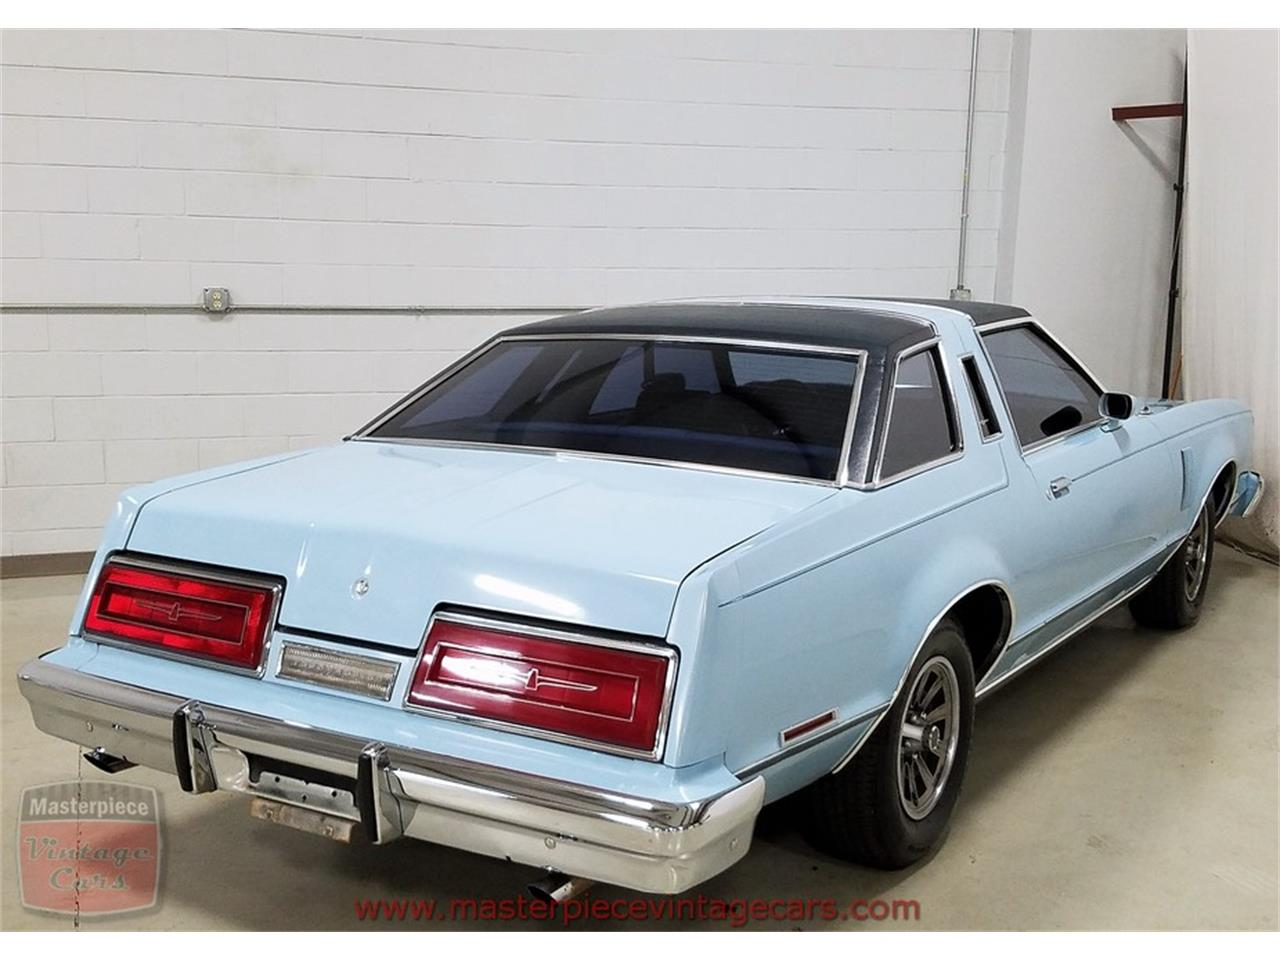 Large Picture of 1979 Thunderbird - $6,950.00 Offered by Masterpiece Vintage Cars - KV4O